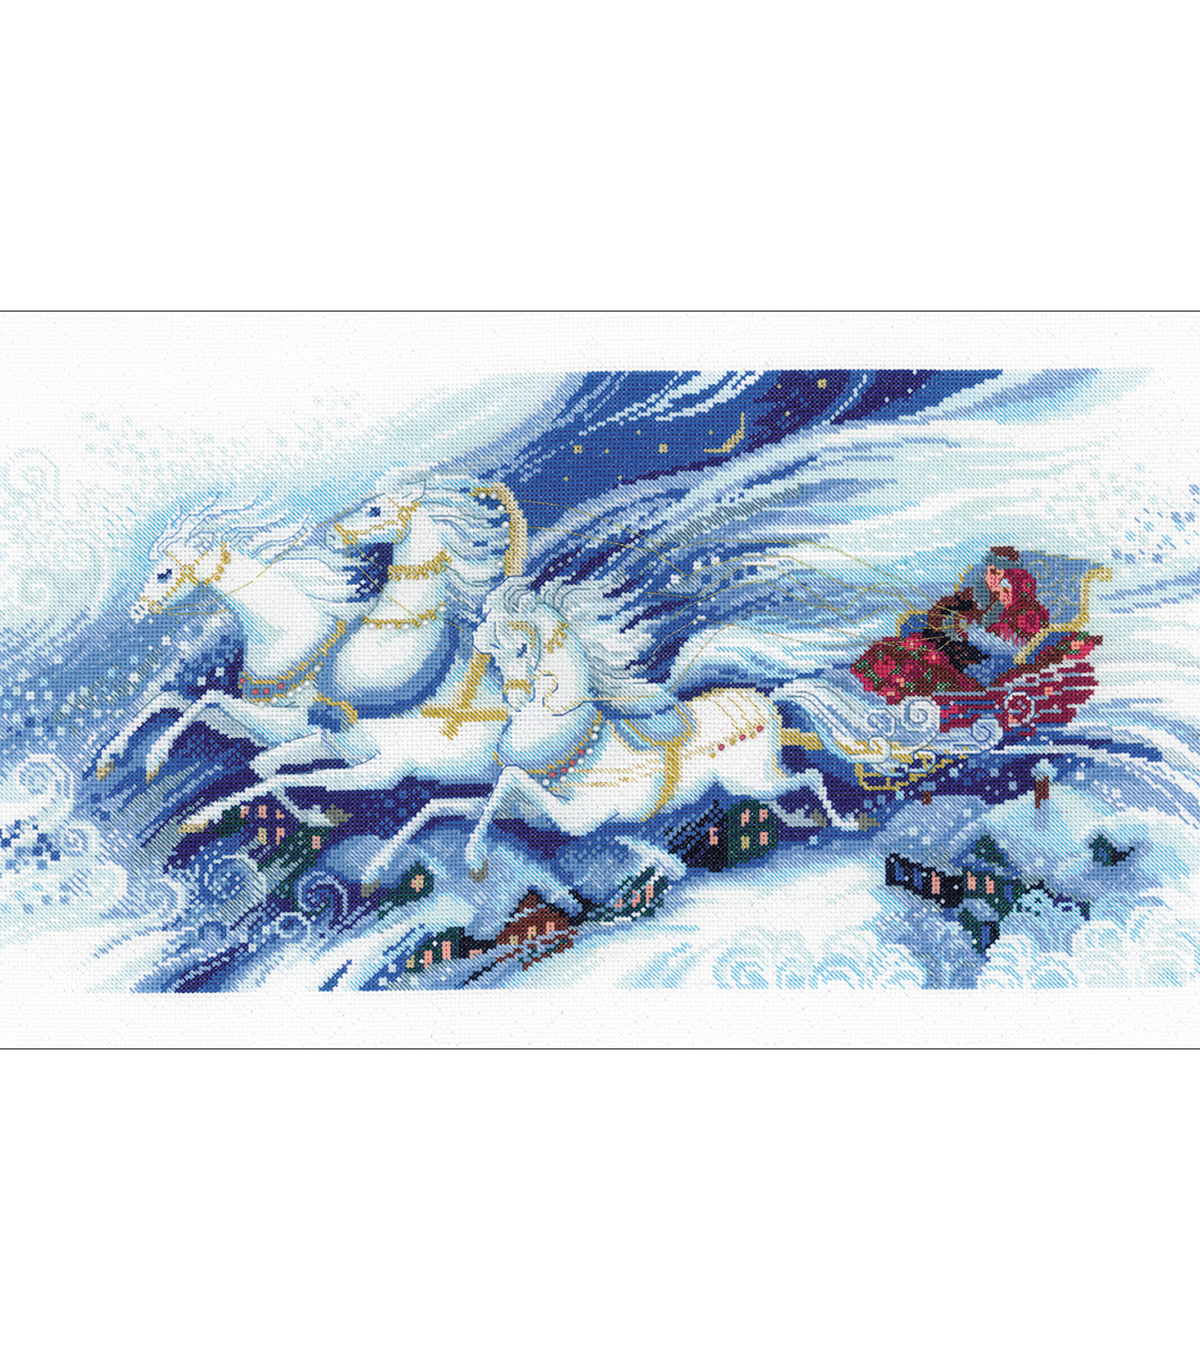 Magical Sleigh Ride Counted Cross Stitch Kit 14 Count